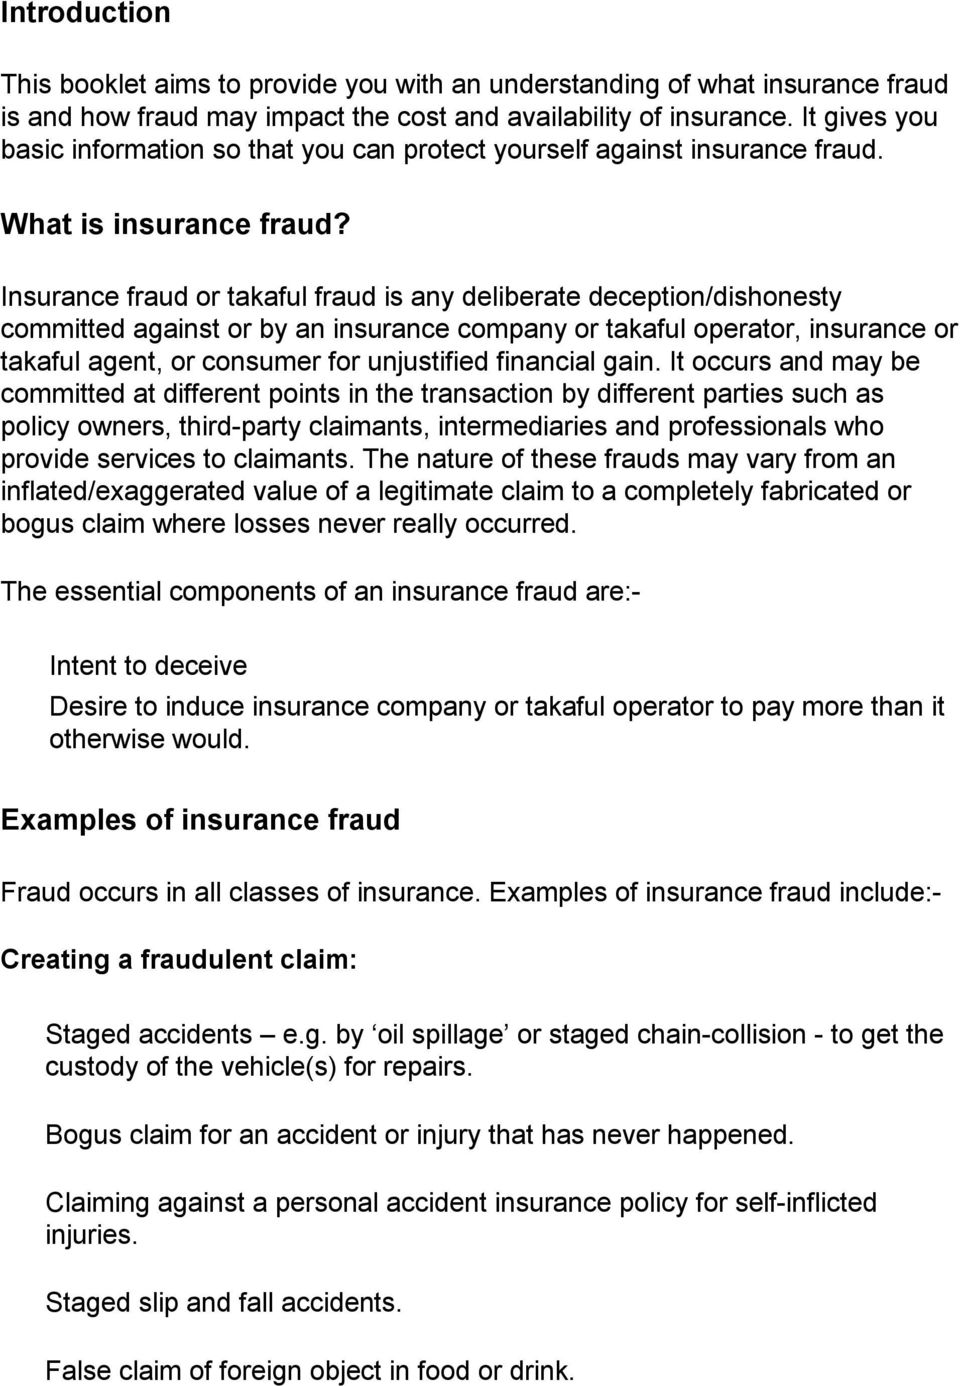 Insurance fraud or takaful fraud is any deliberate deception/dishonesty committed against or by an insurance company or takaful operator, insurance or takaful agent, or consumer for unjustified